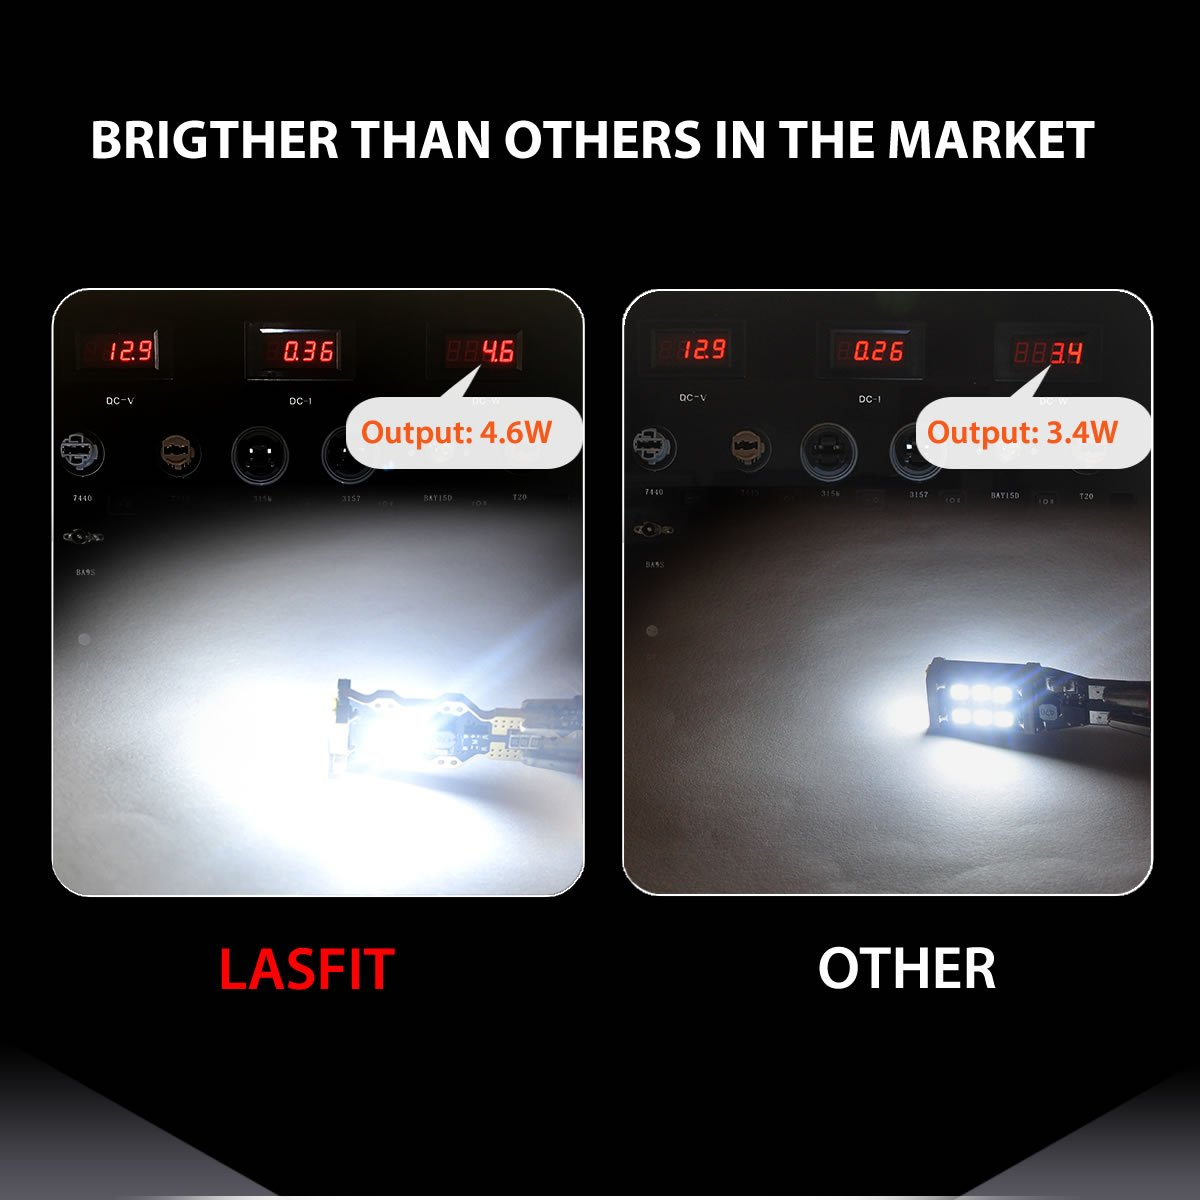 LASFIT 912 921 T15 906 W16W LED Light Bulb SMD 3030 Chipsets 1400 Lumens Extremely Bright for Car Interior Dome Trunk Reverse Backup Lights, Polarity Free, Xenon White(Pack of 2) by LASFIT (Image #3)